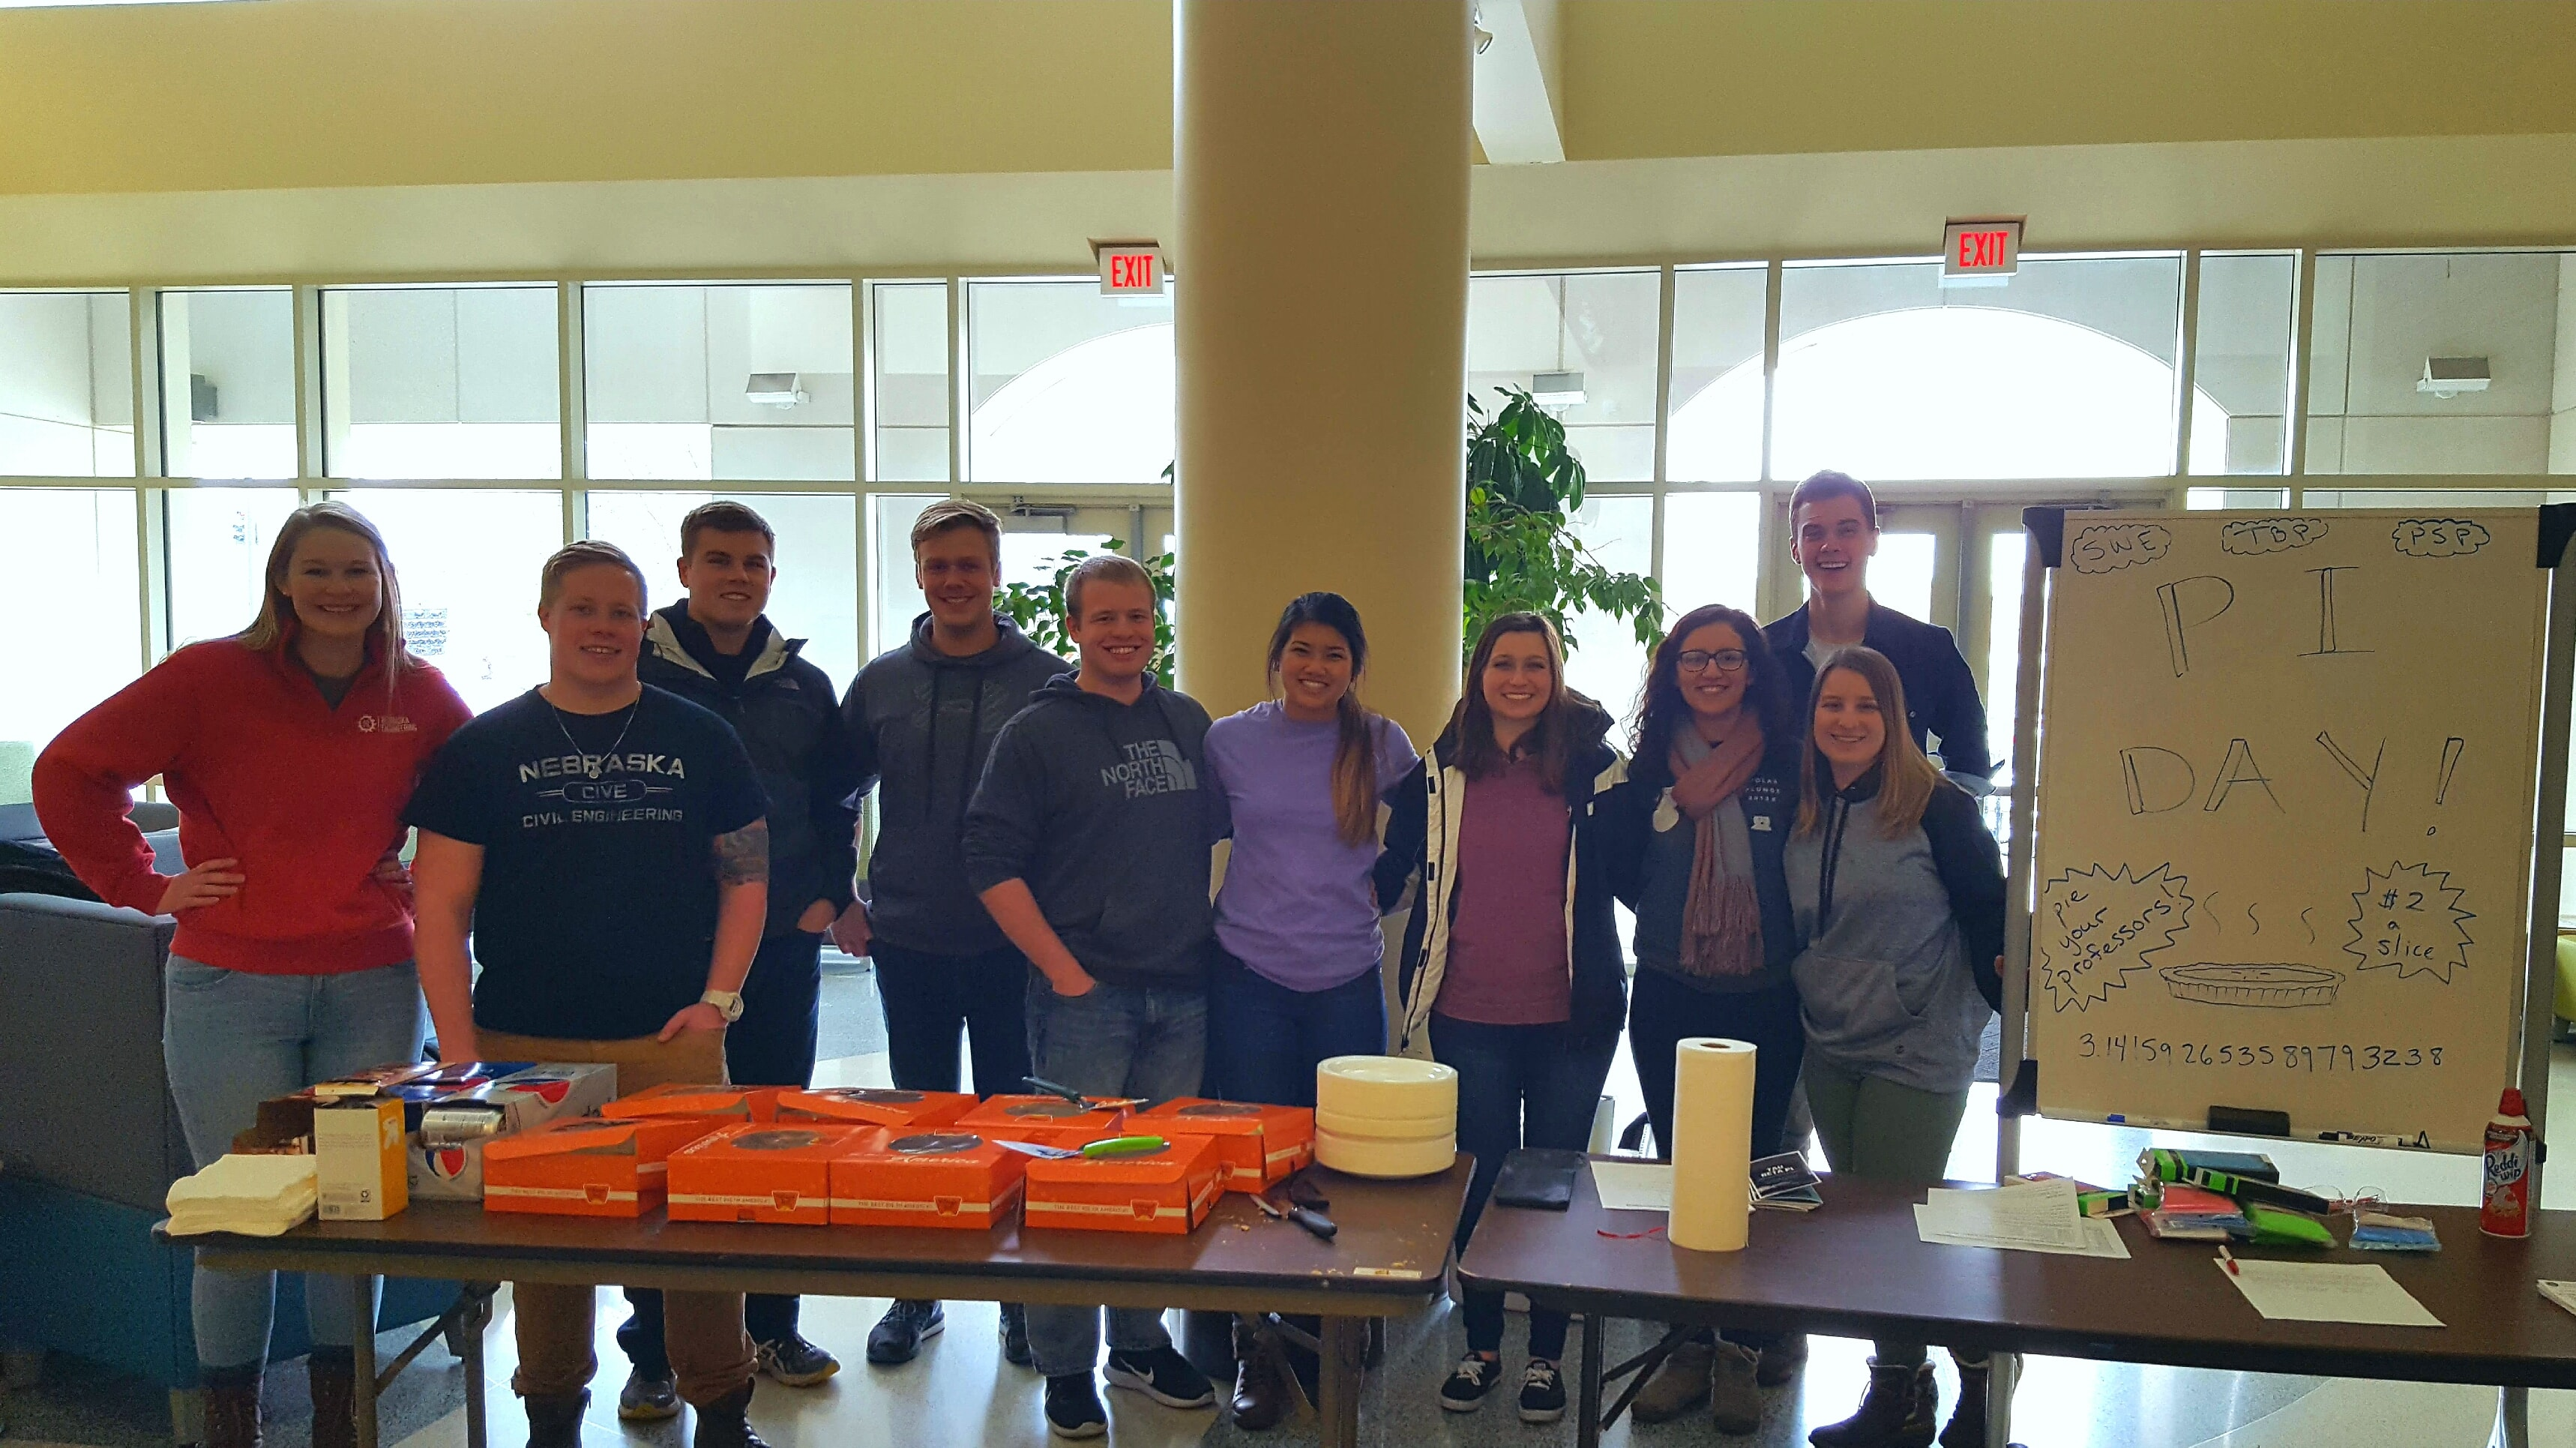 Several members volunteering to sell Pie on Pi Day